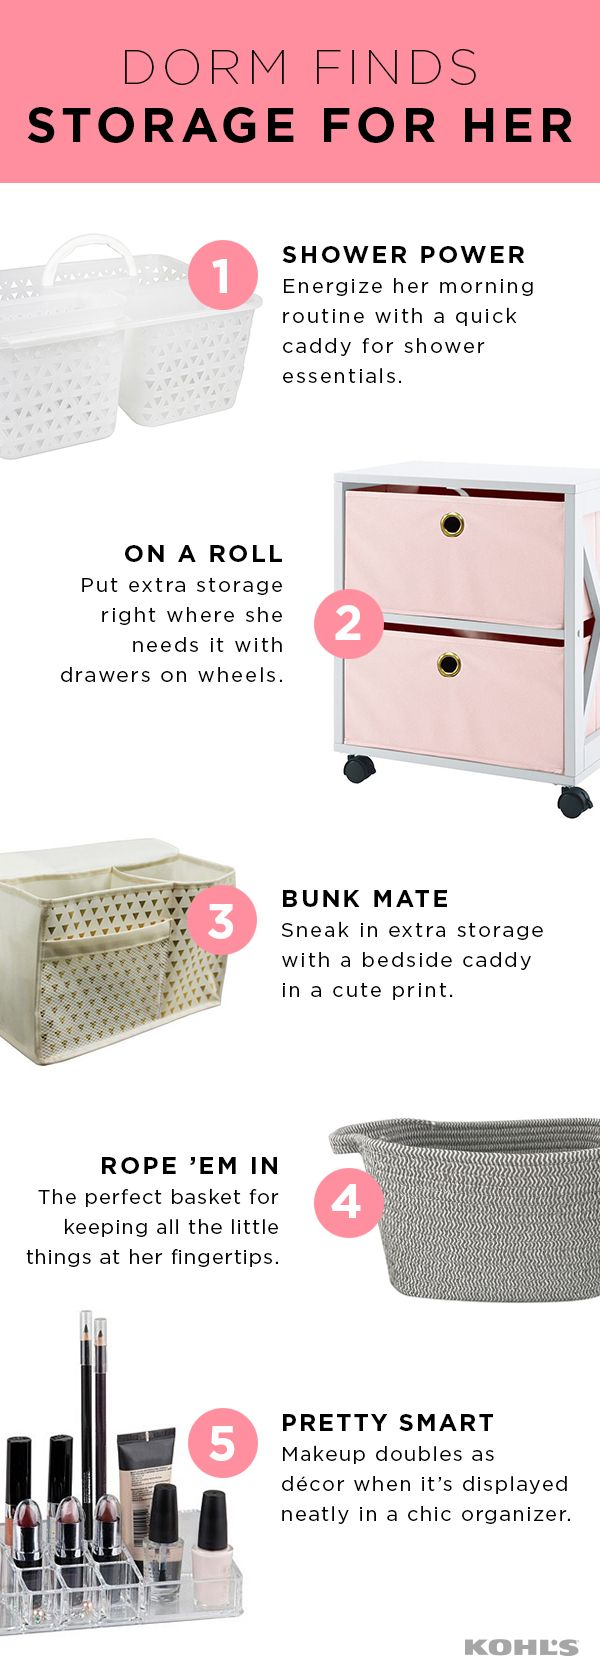 College life is all about adapting….especially when it comes to moving into the dorms. Help your daughter find her fit with space-saving storage solutions. Her morning routine will be a breeze with a shower caddy that's ready to go when she is and a cosmetic organizer that keeps makeup handy. Extra drawers on wheels, a bedside caddy and rope baskets keep everything in order while adding a touch of style. Create a dorm sweet home with Kohl's.